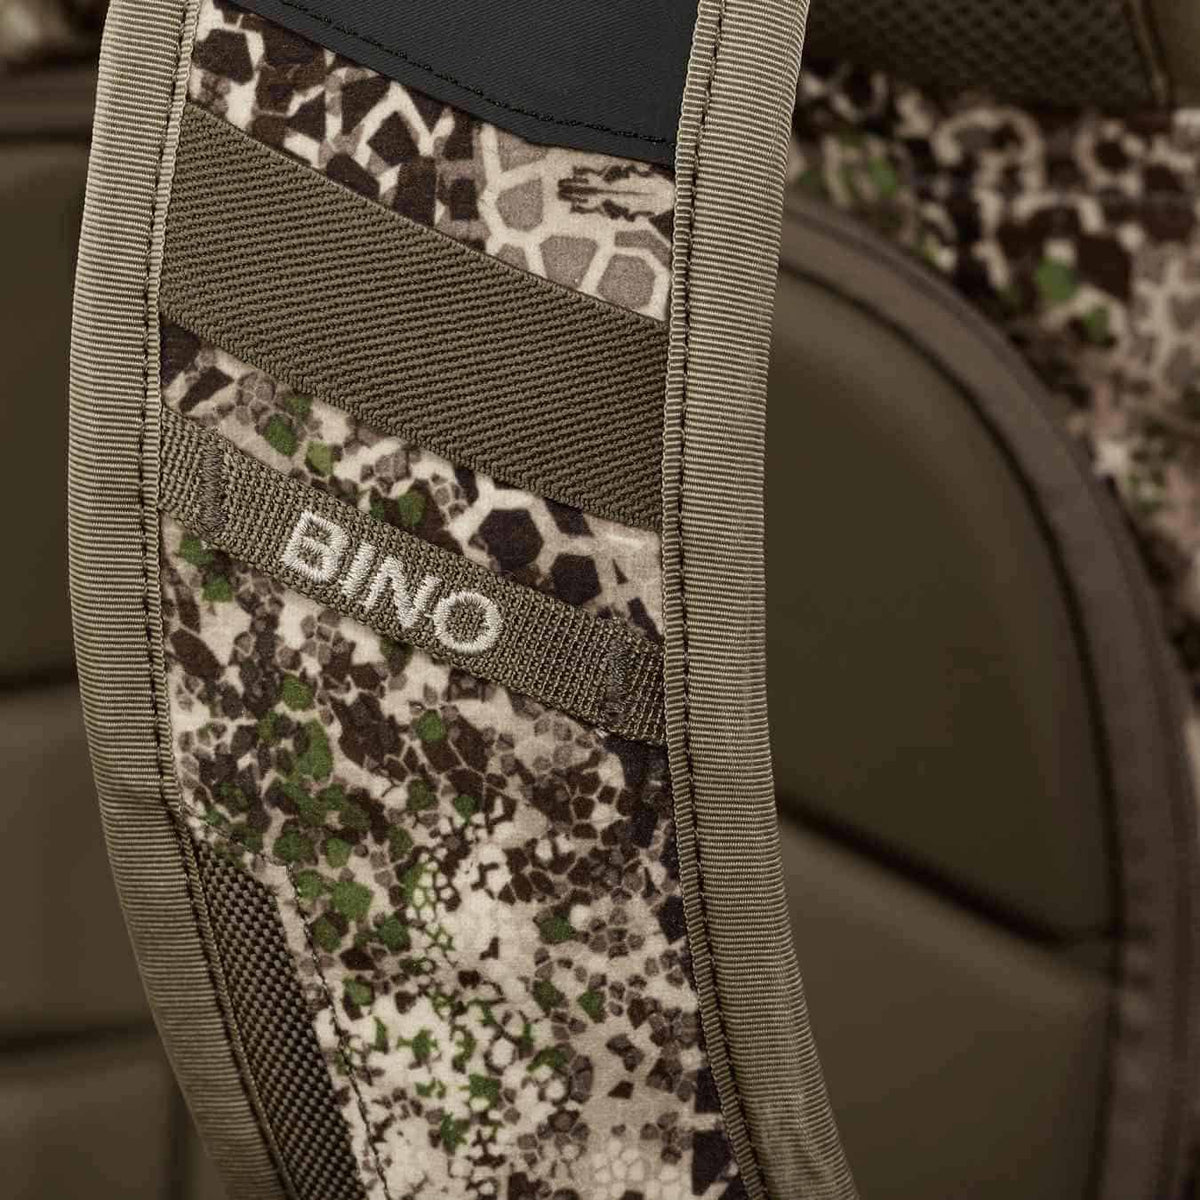 Badlands Packs 2200 Hunting Backpack 2020 Model Approach Camo Back Additional Bino Connect Detail